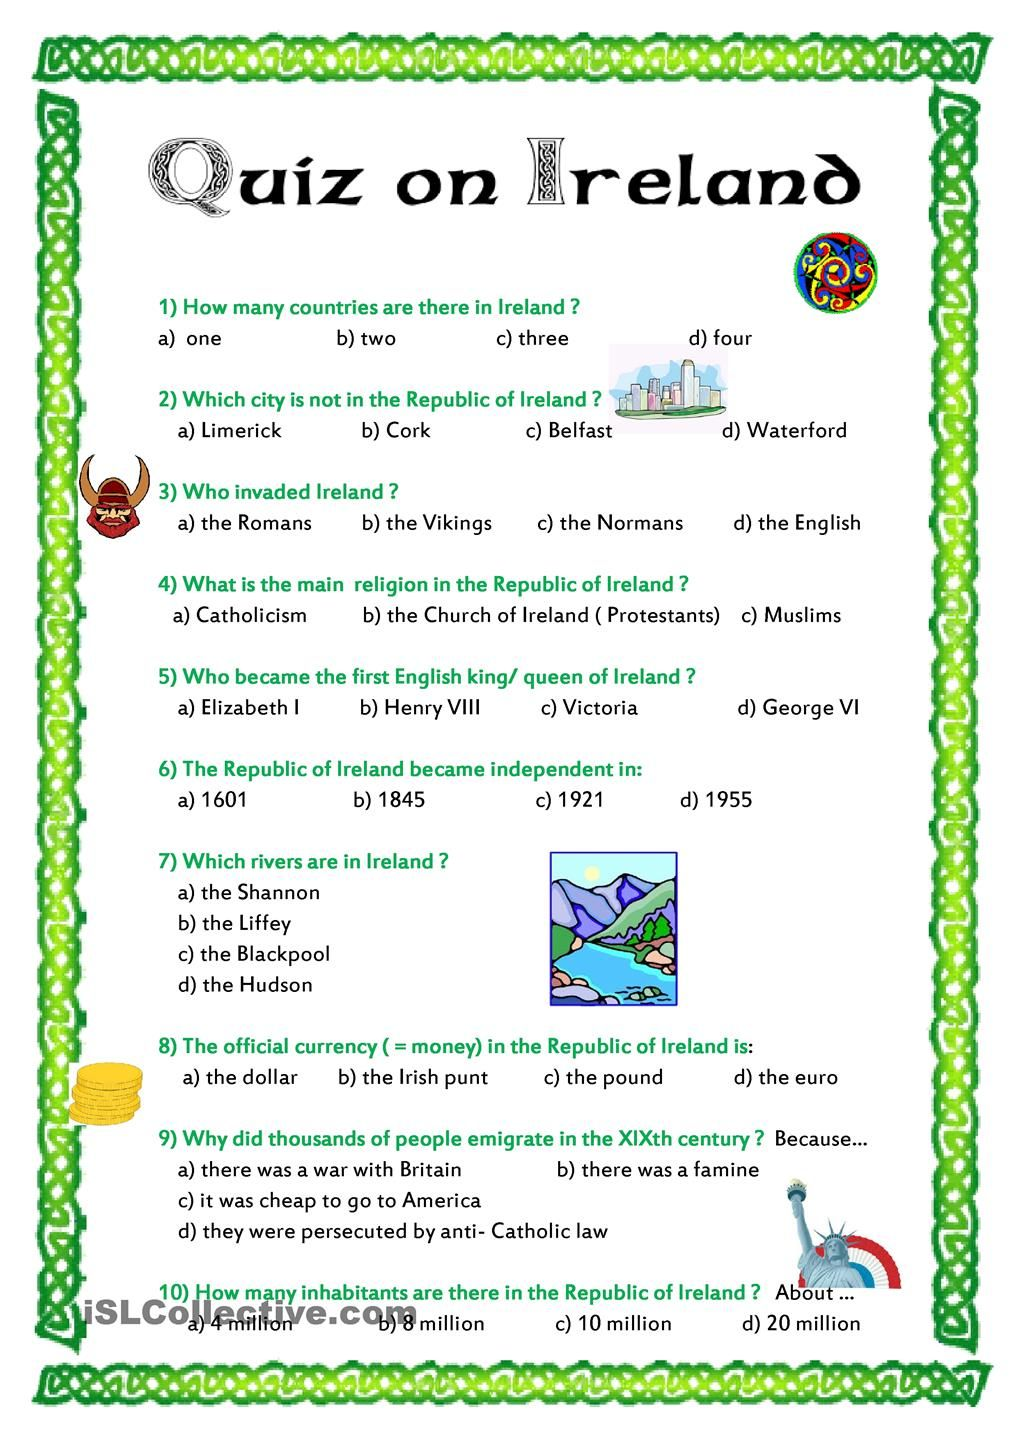 Quiz on Ireland worksheet - Free ESL printable worksheets made by ...